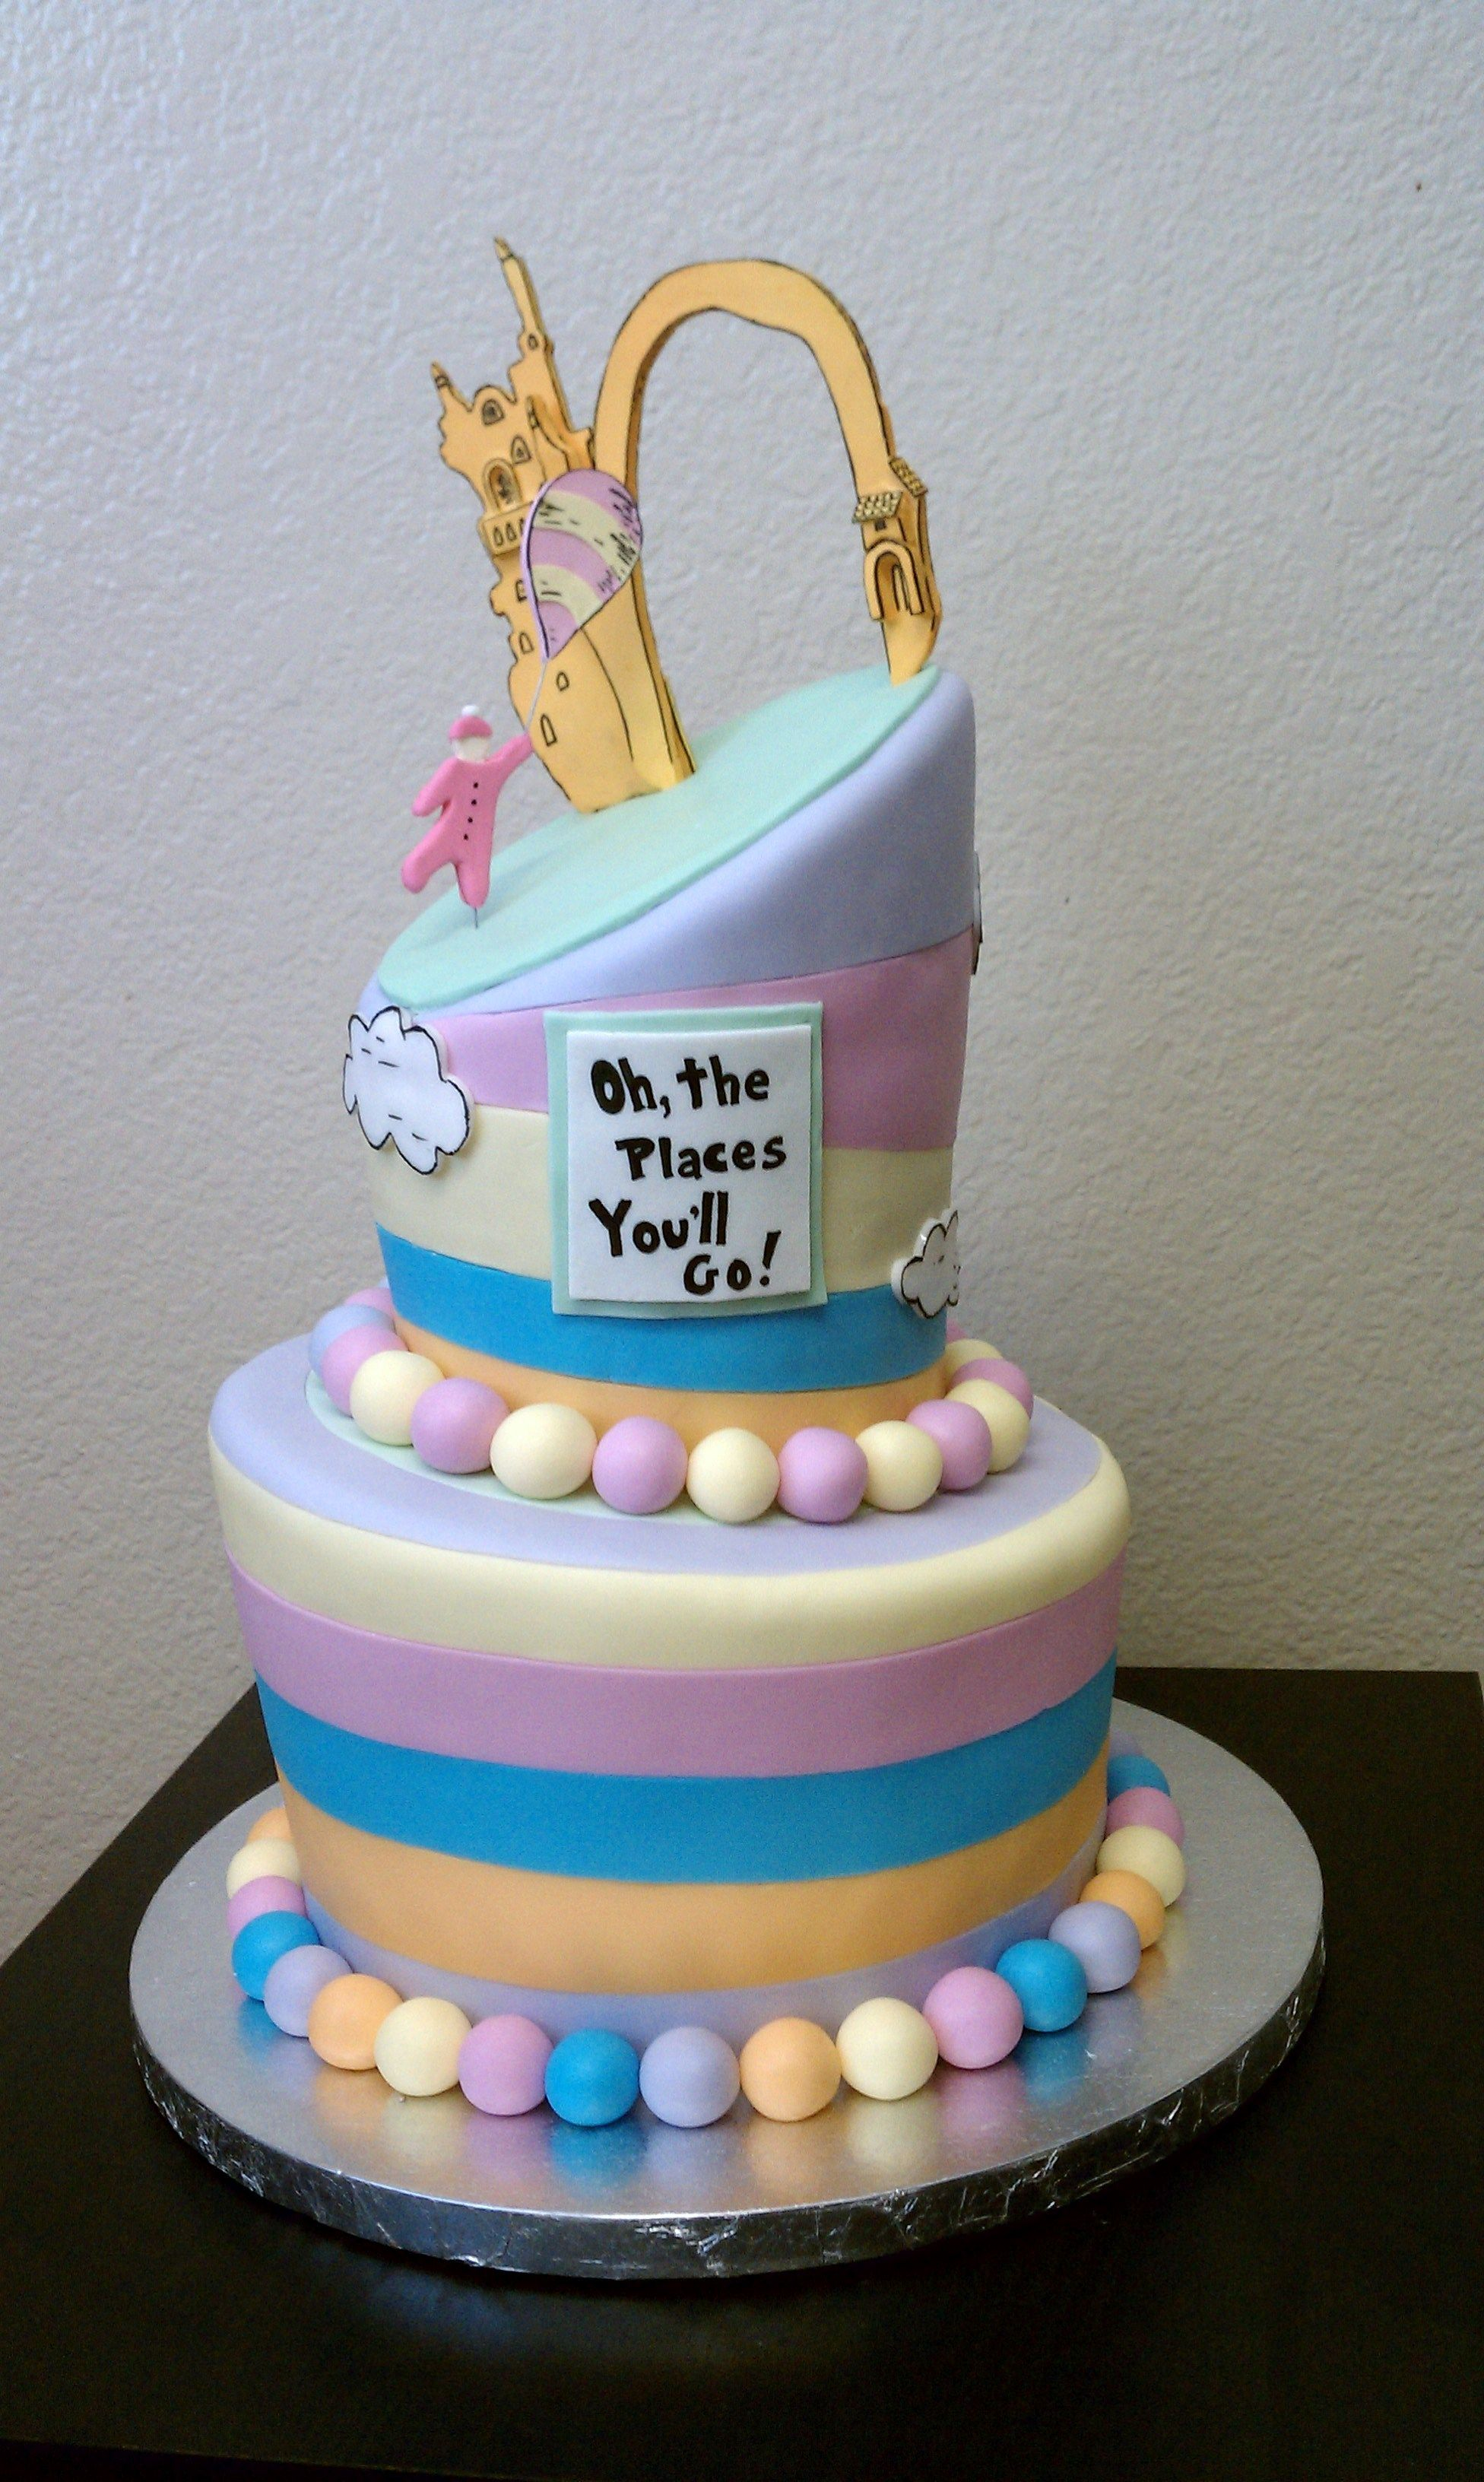 Dr. Seuss Baby Shower U0027Oh The Places Youu0027ll Go!u0027 Cake